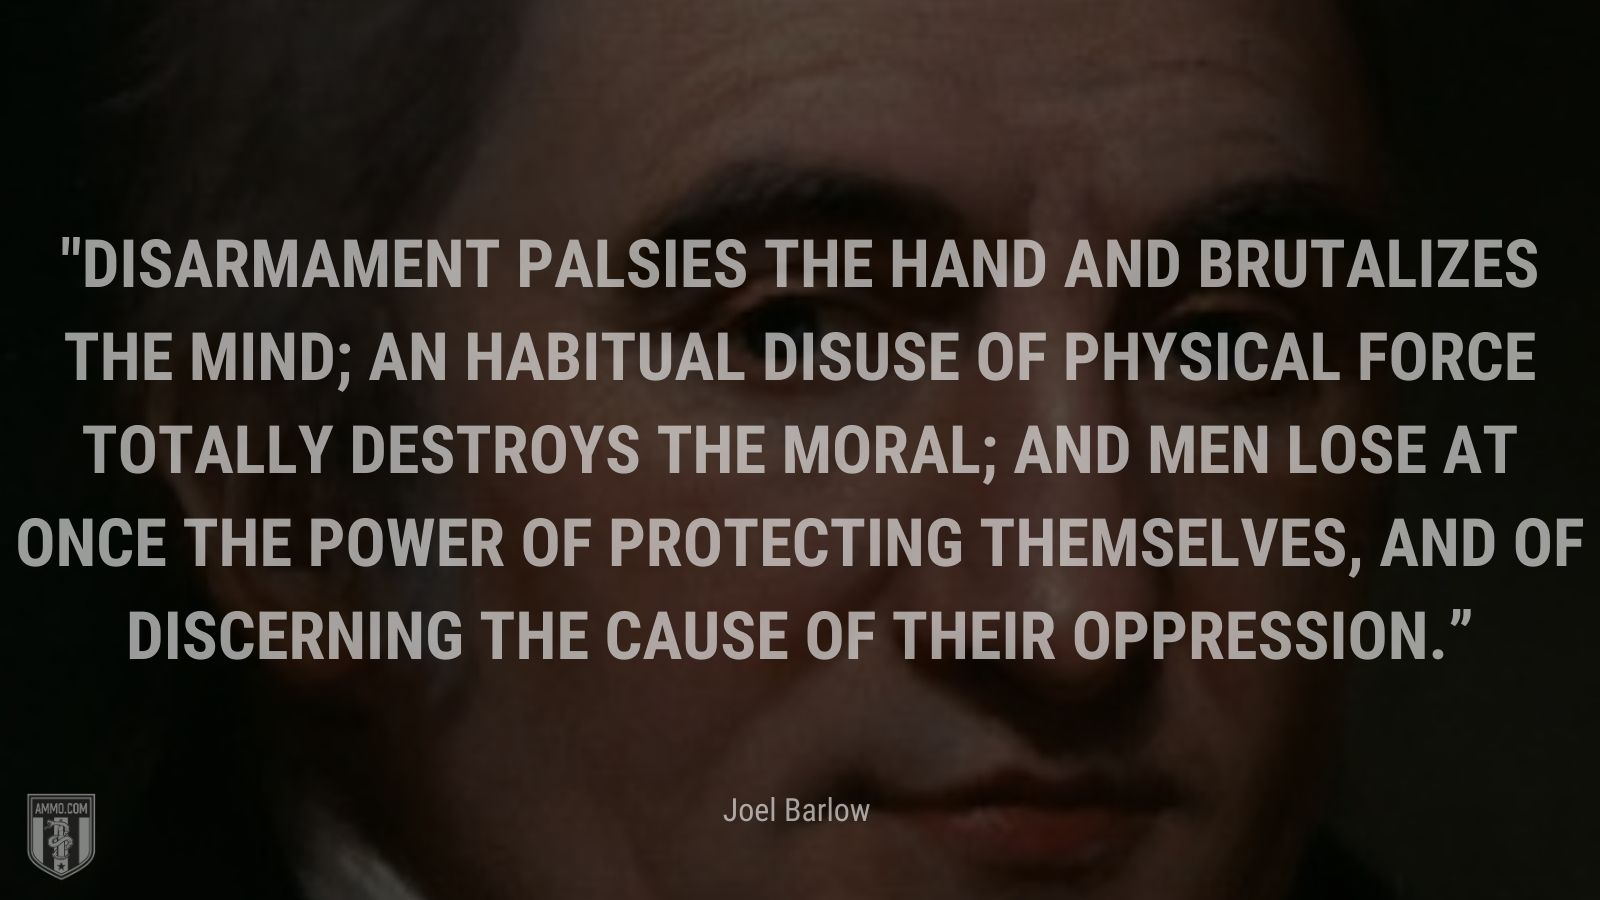 """""""Disarmament palsies the hand and brutalizes the mind; an habitual disuse of physical force totally destroys the moral; and men lose at once the power of protecting themselves, and of discerning the cause of their oppression."""" - Joel Barlow"""